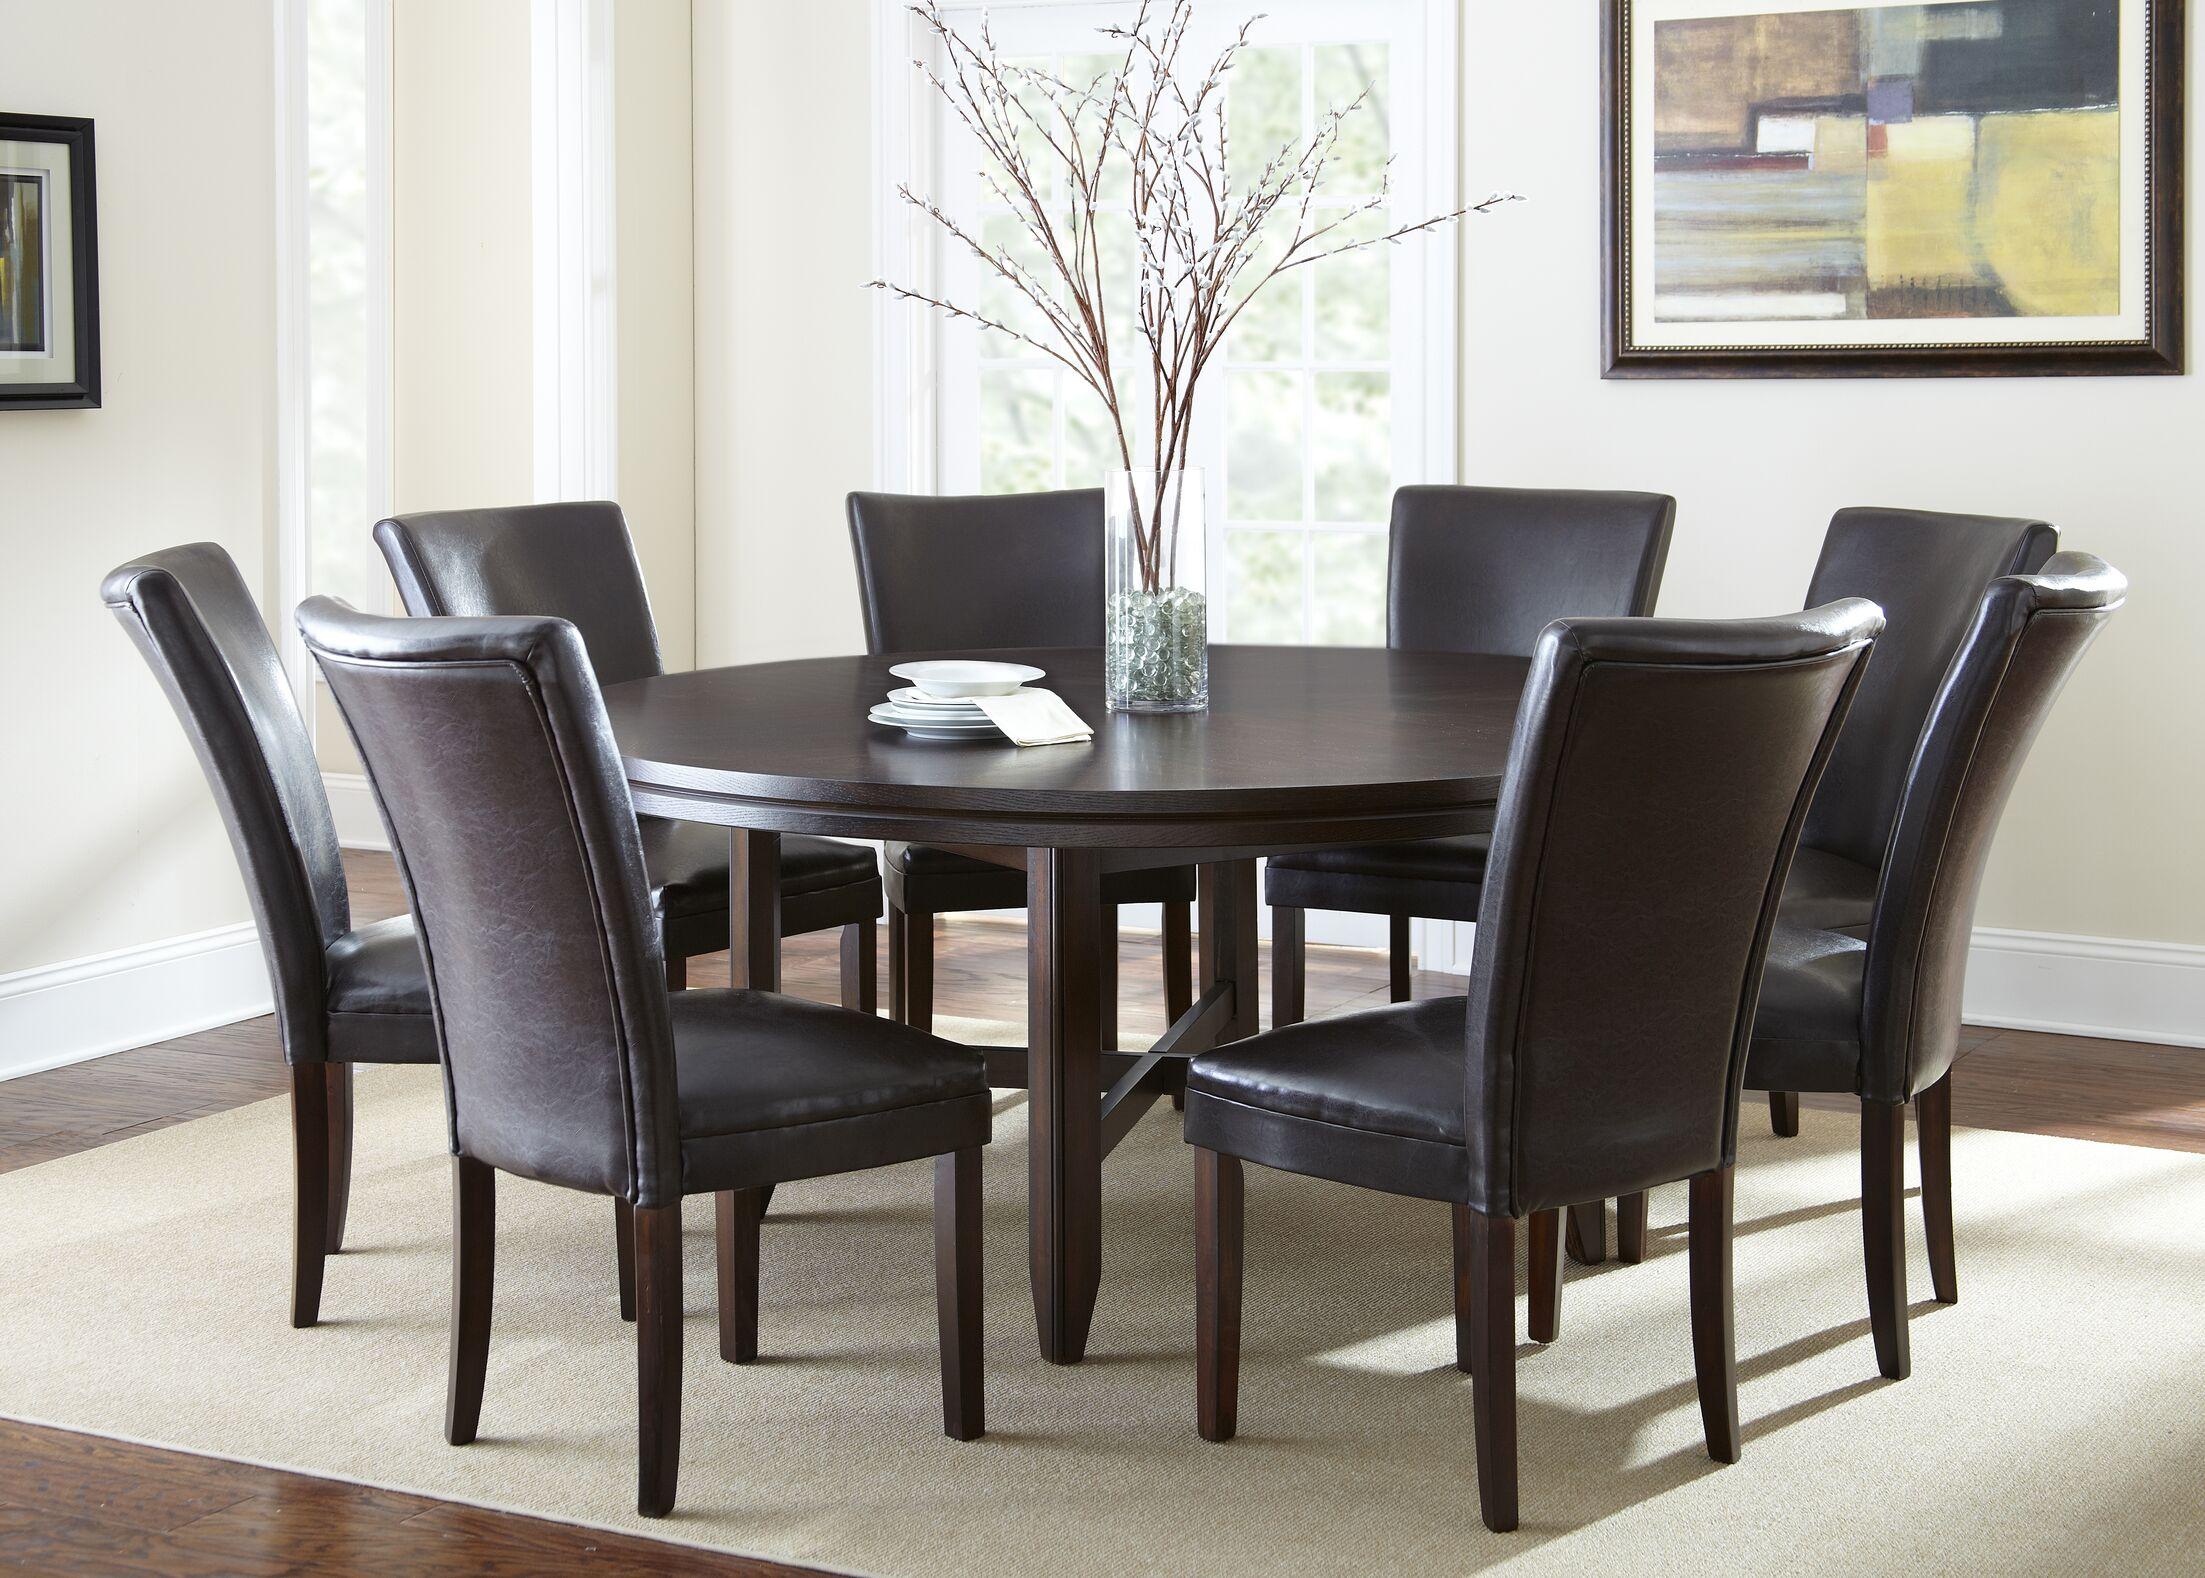 Dining Table Sets Fenley 9 Piece Dining Set